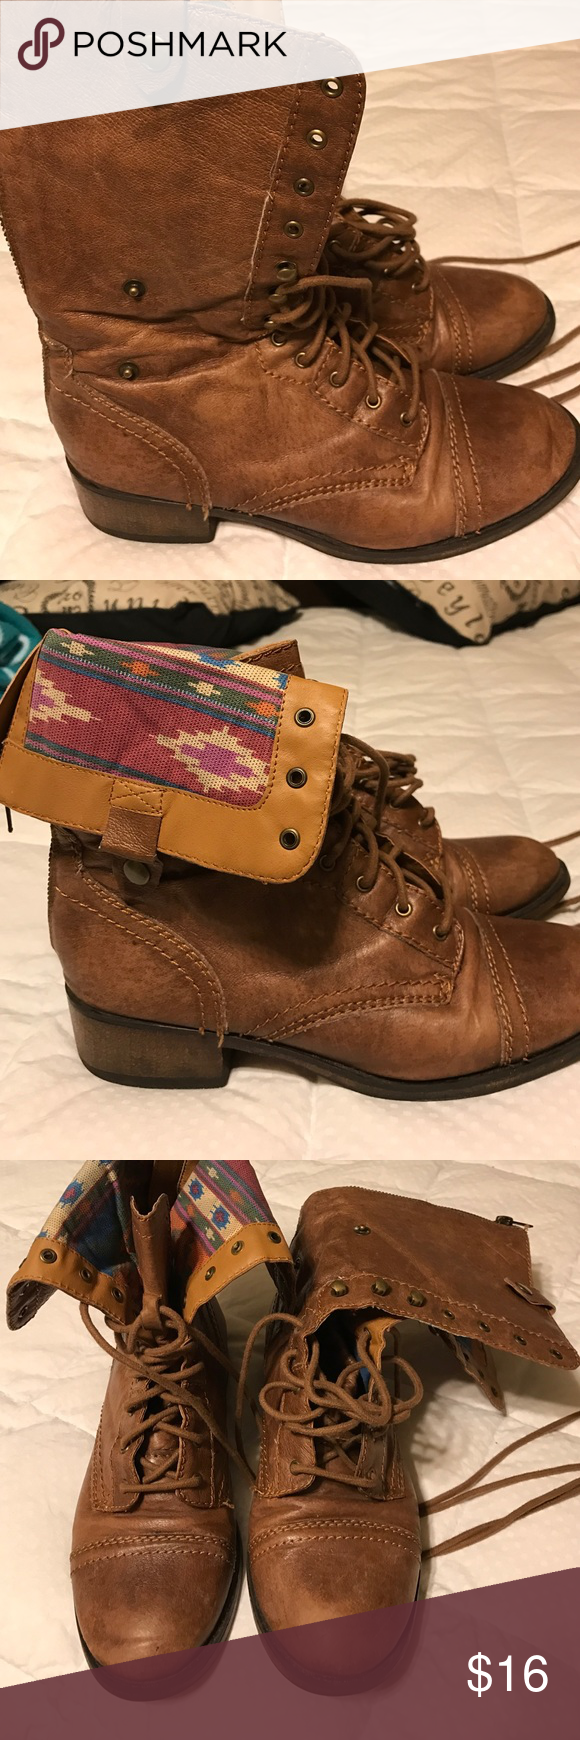 Steve Madden boots Lace up brown leather boots, combat style, can be worn up or cuffs turned out for bootie style. Aztec print inside. Some wear but in great condition. Bought on Poshmark but too small. She said size 10 but I'm sure they are a 9 or 9.5. Cannot find any marking on size. Steve Madden Shoes Combat & Moto Boots